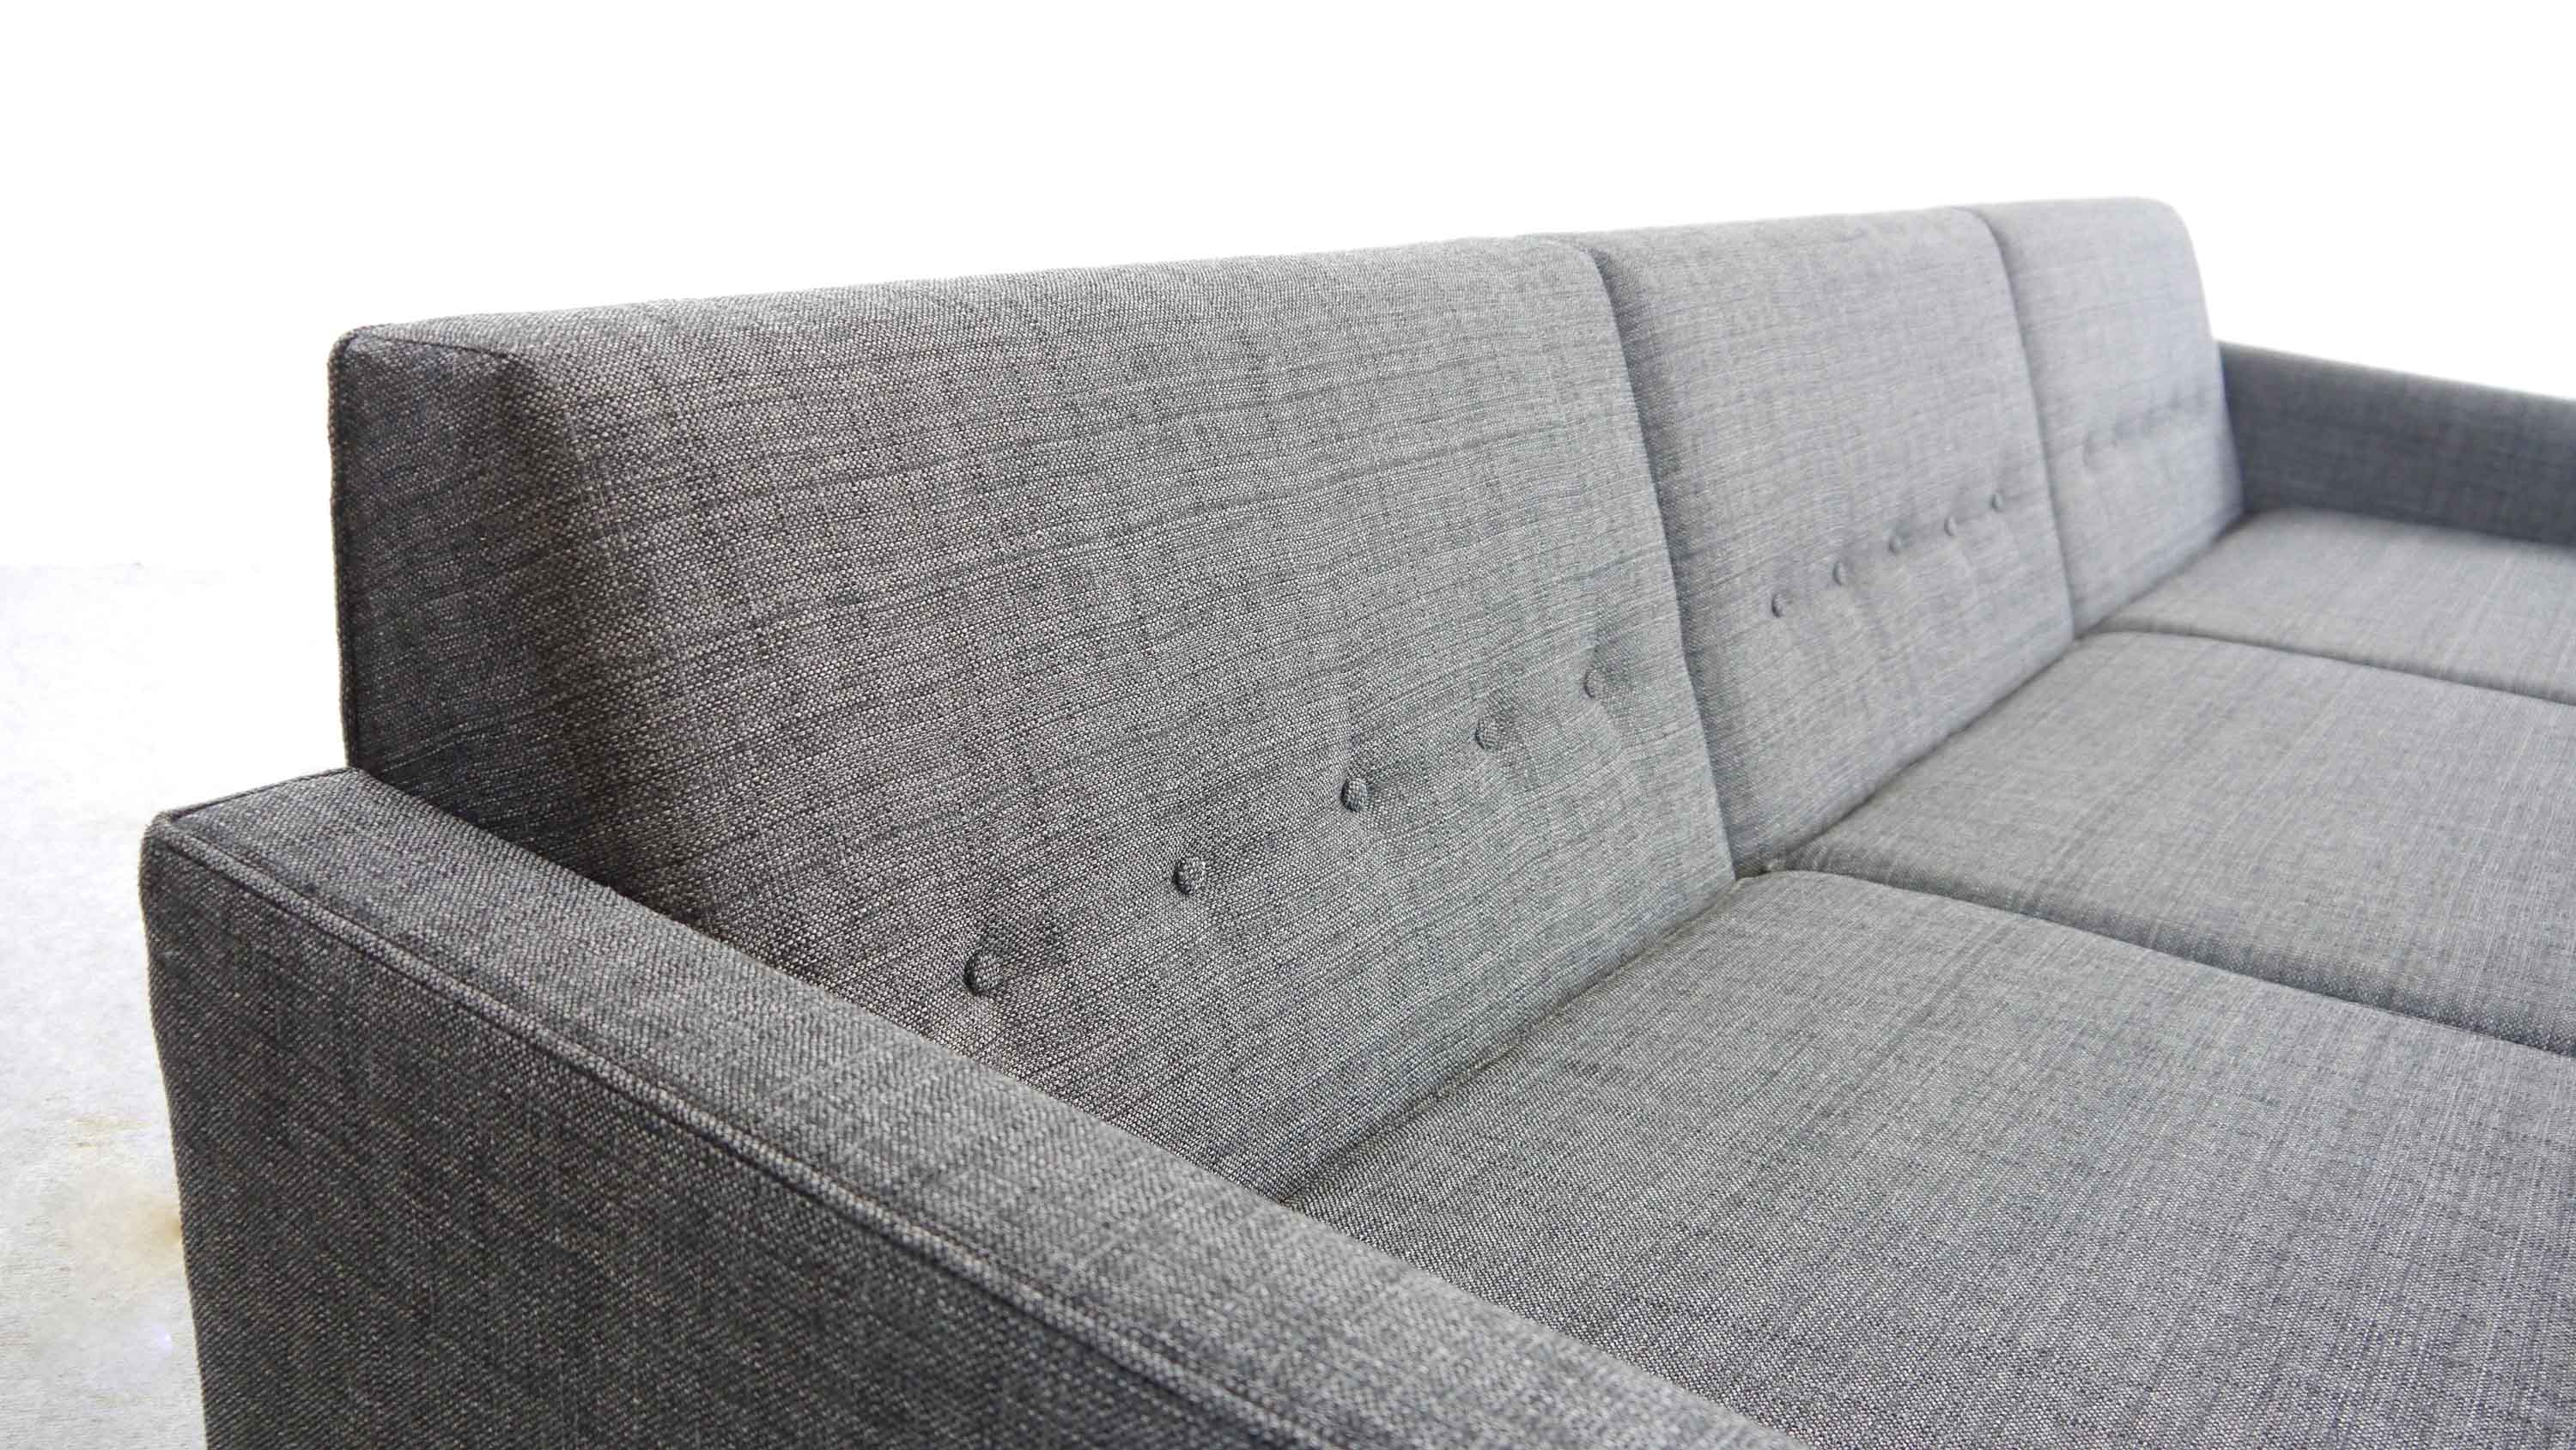 Tremendous George Nelson Modular Sofa 3 Seat With Armrests By Herman Miller Grey Fabric Pdpeps Interior Chair Design Pdpepsorg